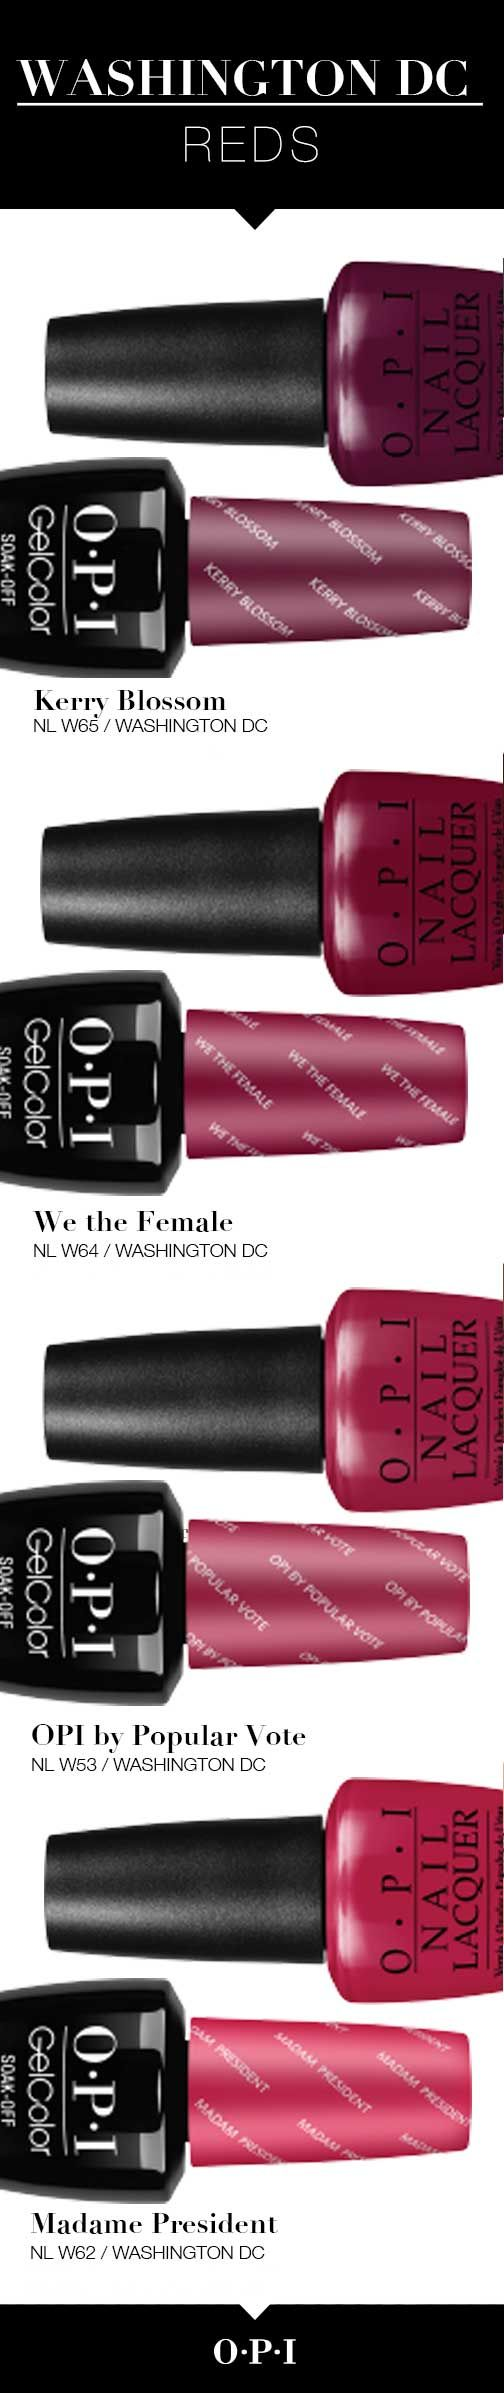 Meet the Reds from the New OPI Washington DC Collection! Introducing OPI's fall collection inspired by our nation's capital, Washington DC. OPI is delighted to partner with Kerry Washington on these must-have shades for fall. Give your nails the presidential treatment with #OPIWashingtonDC bold colors and looks. Get your hands on them today!